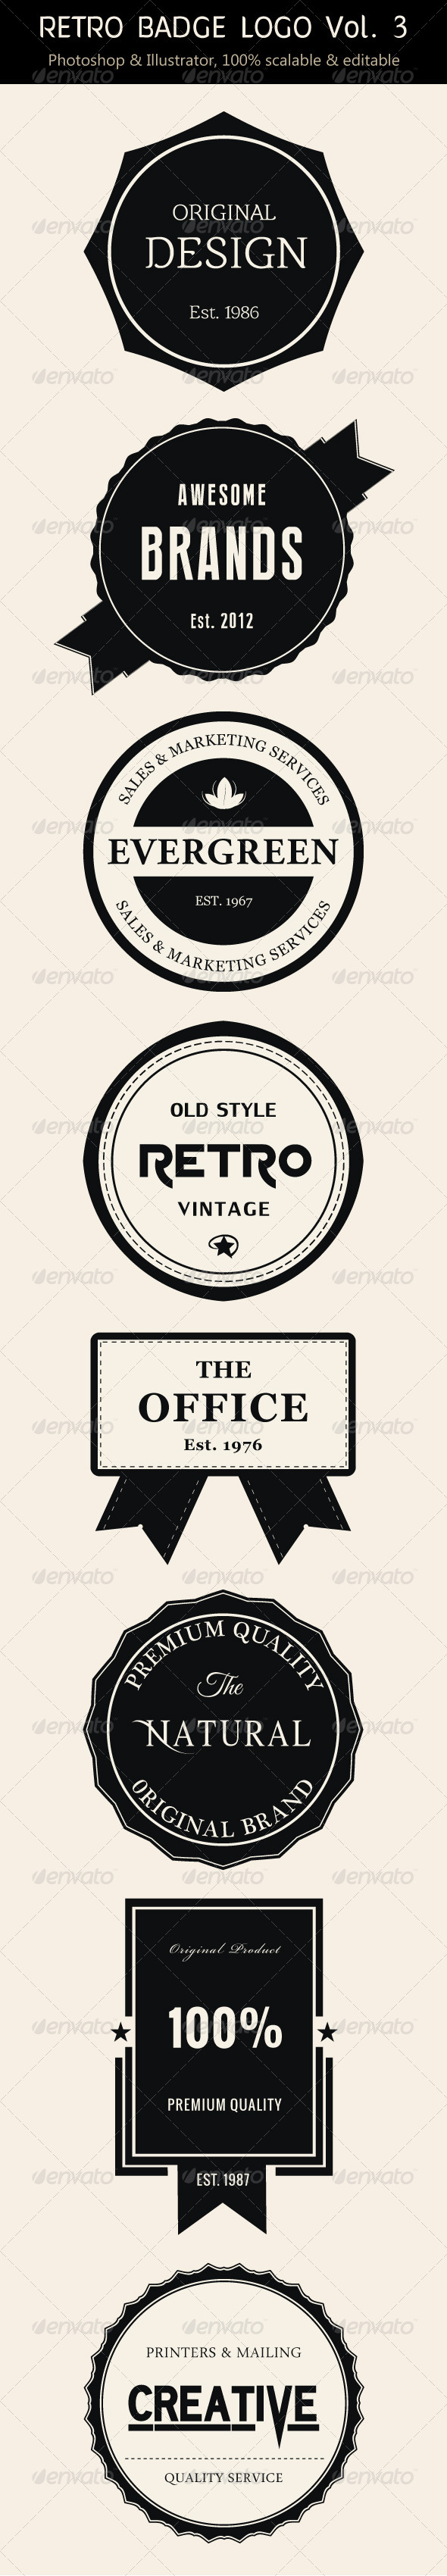 Retro Badge Logo Vol. 3 - Badges & Stickers Web Elements